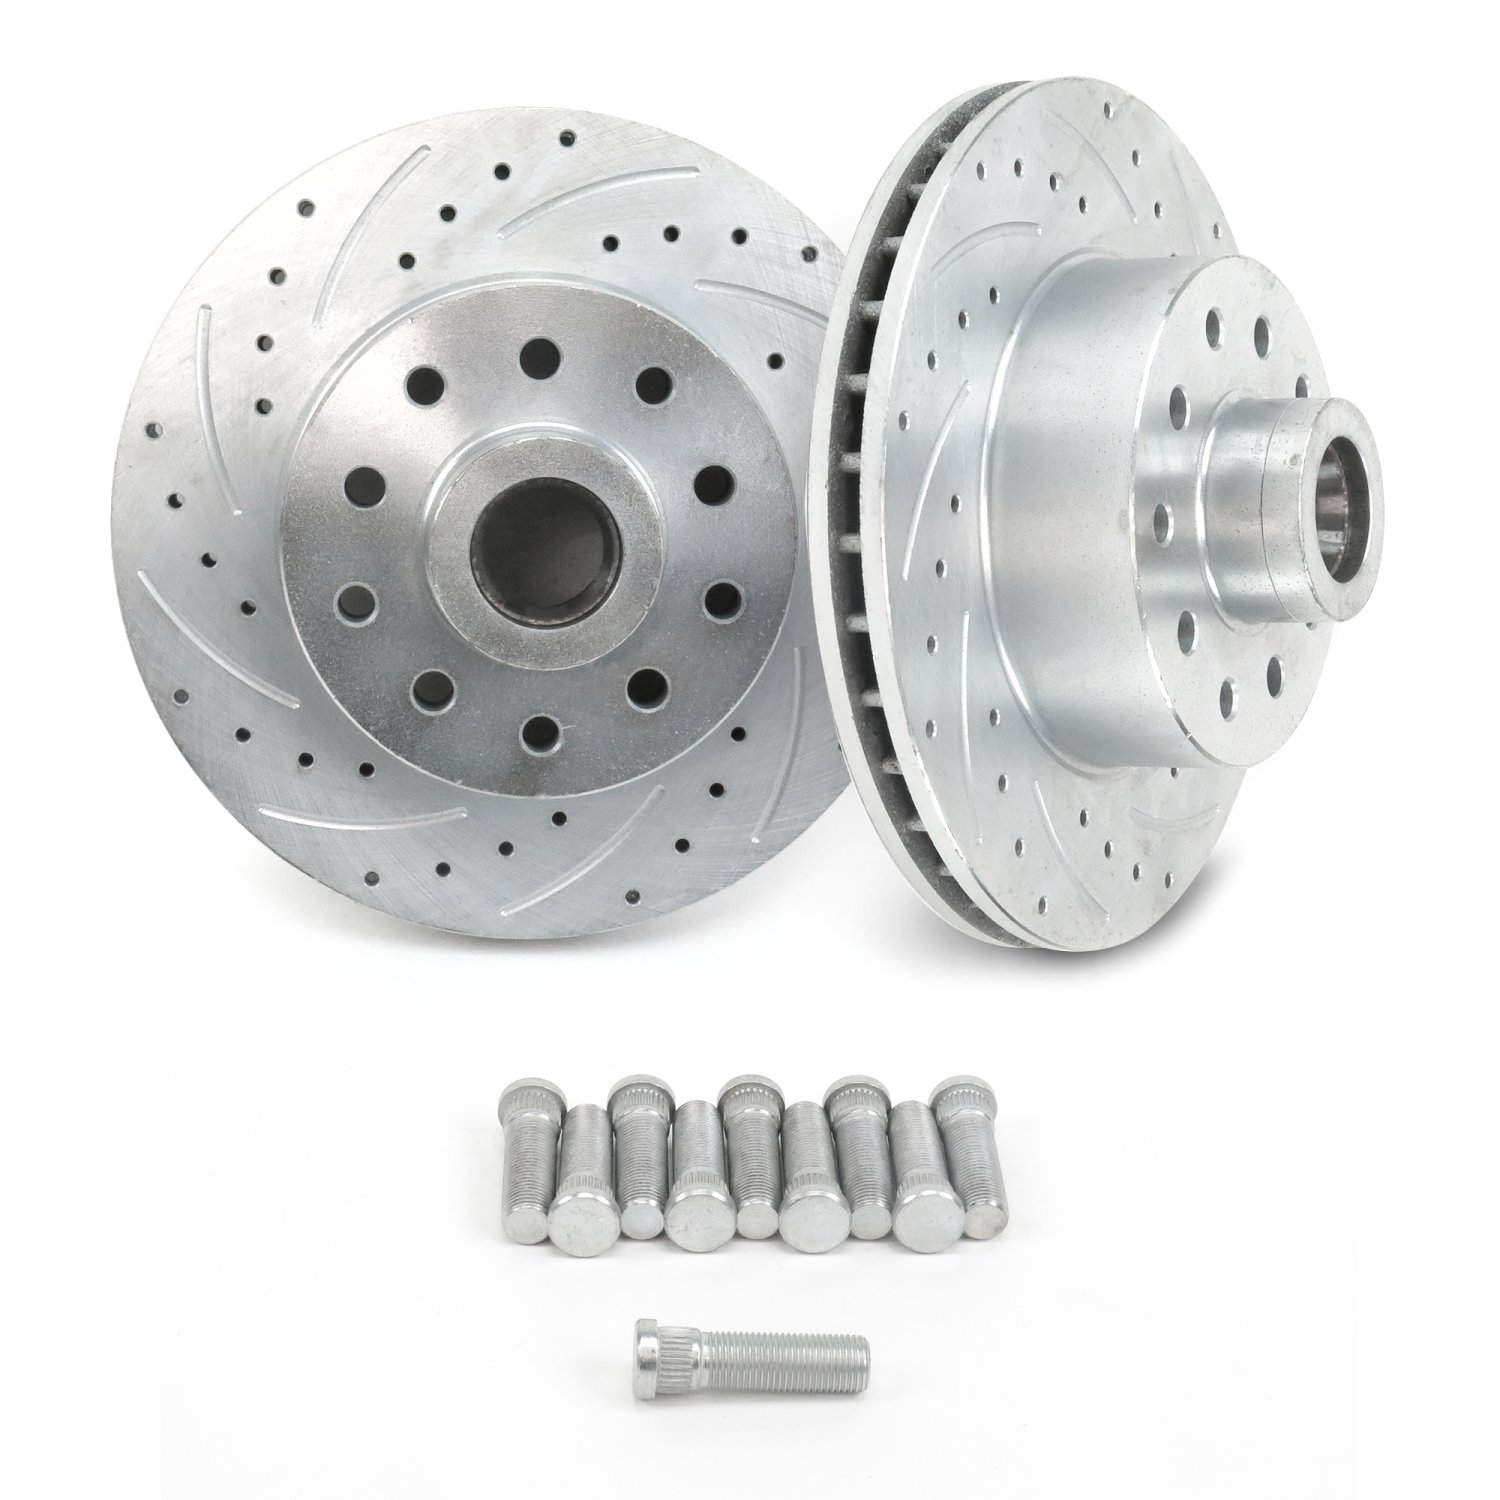 Details About Ford Mustang Ii 11 Front Disc Brake Slotted Rotors 5 X 4 Street Rod Pair